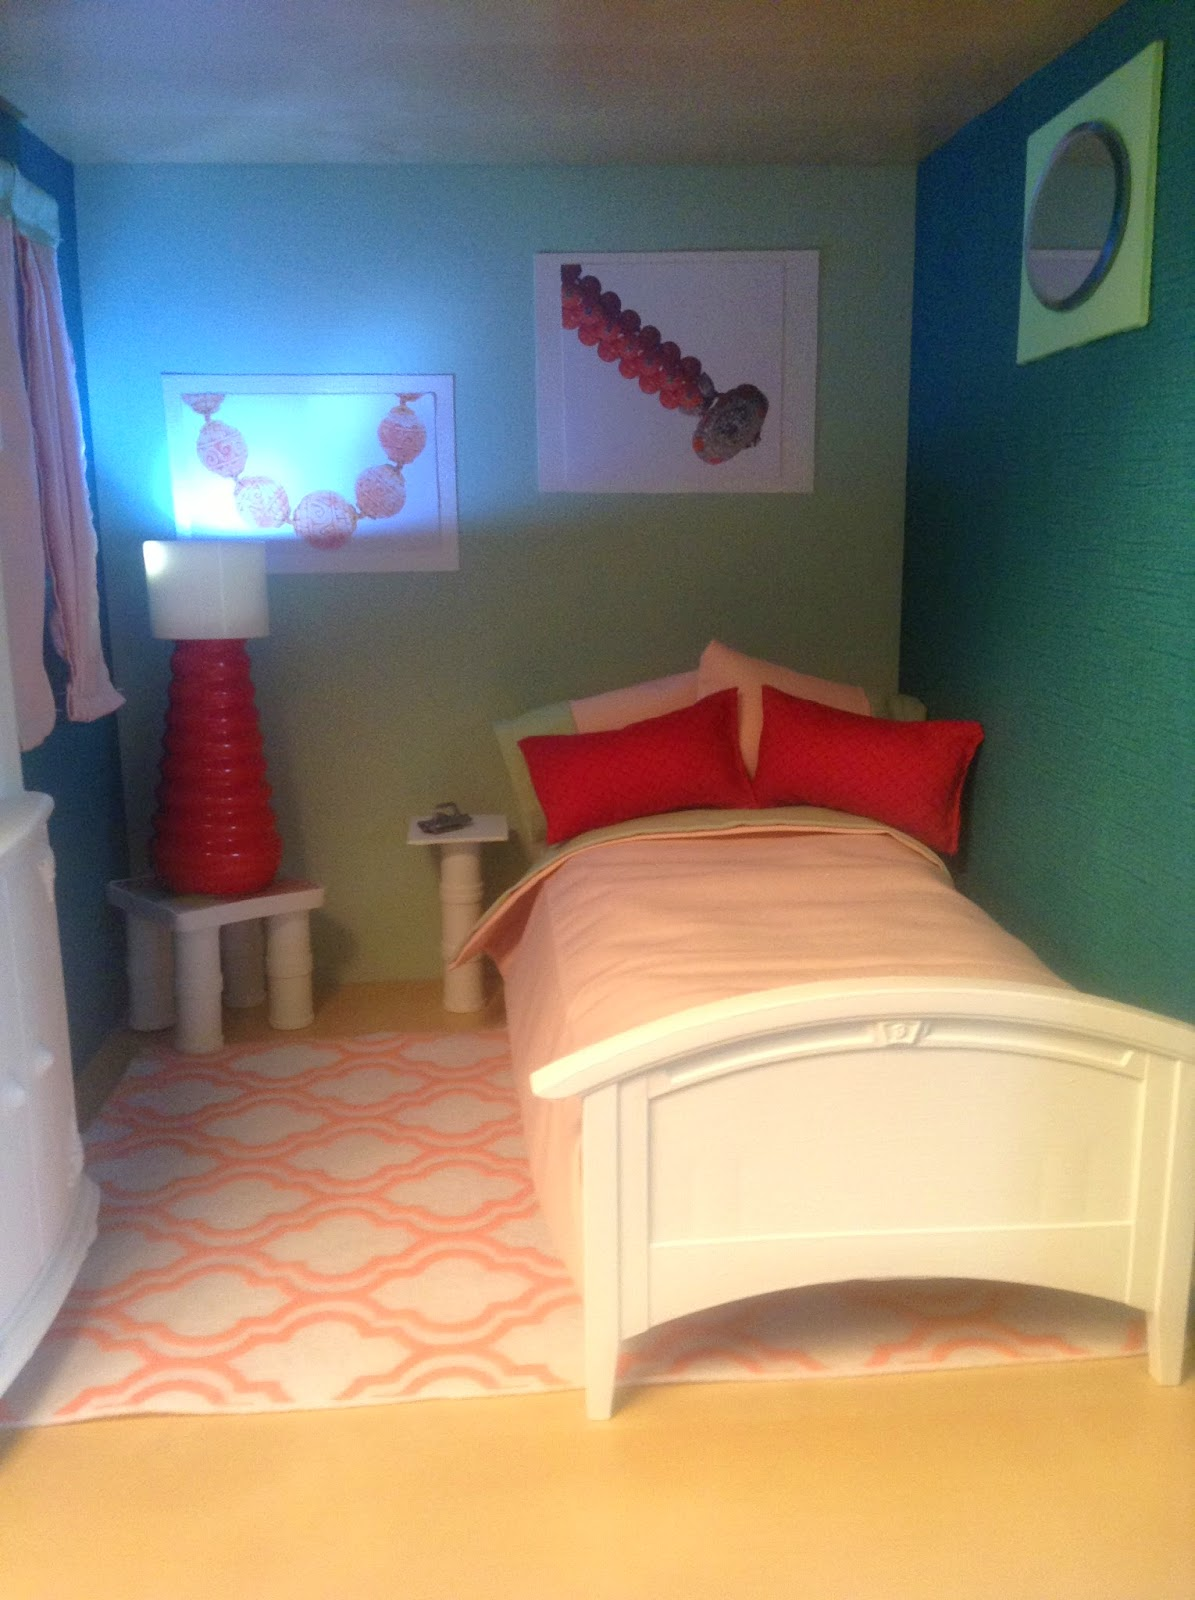 New For The Bedroom Jayes Doll Space Embers New Bedroom